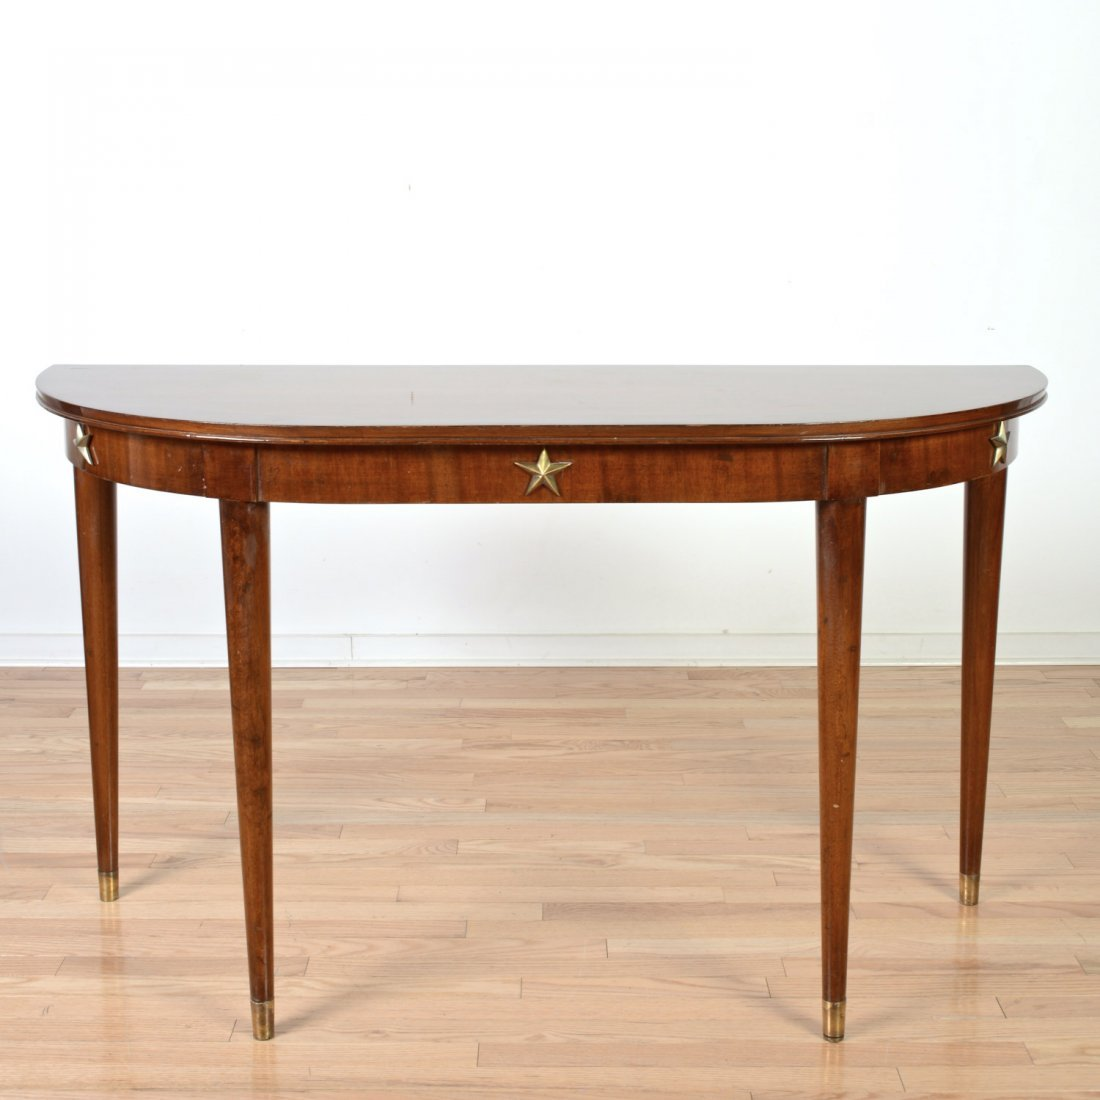 French Art Deco brass mounted mahogany console